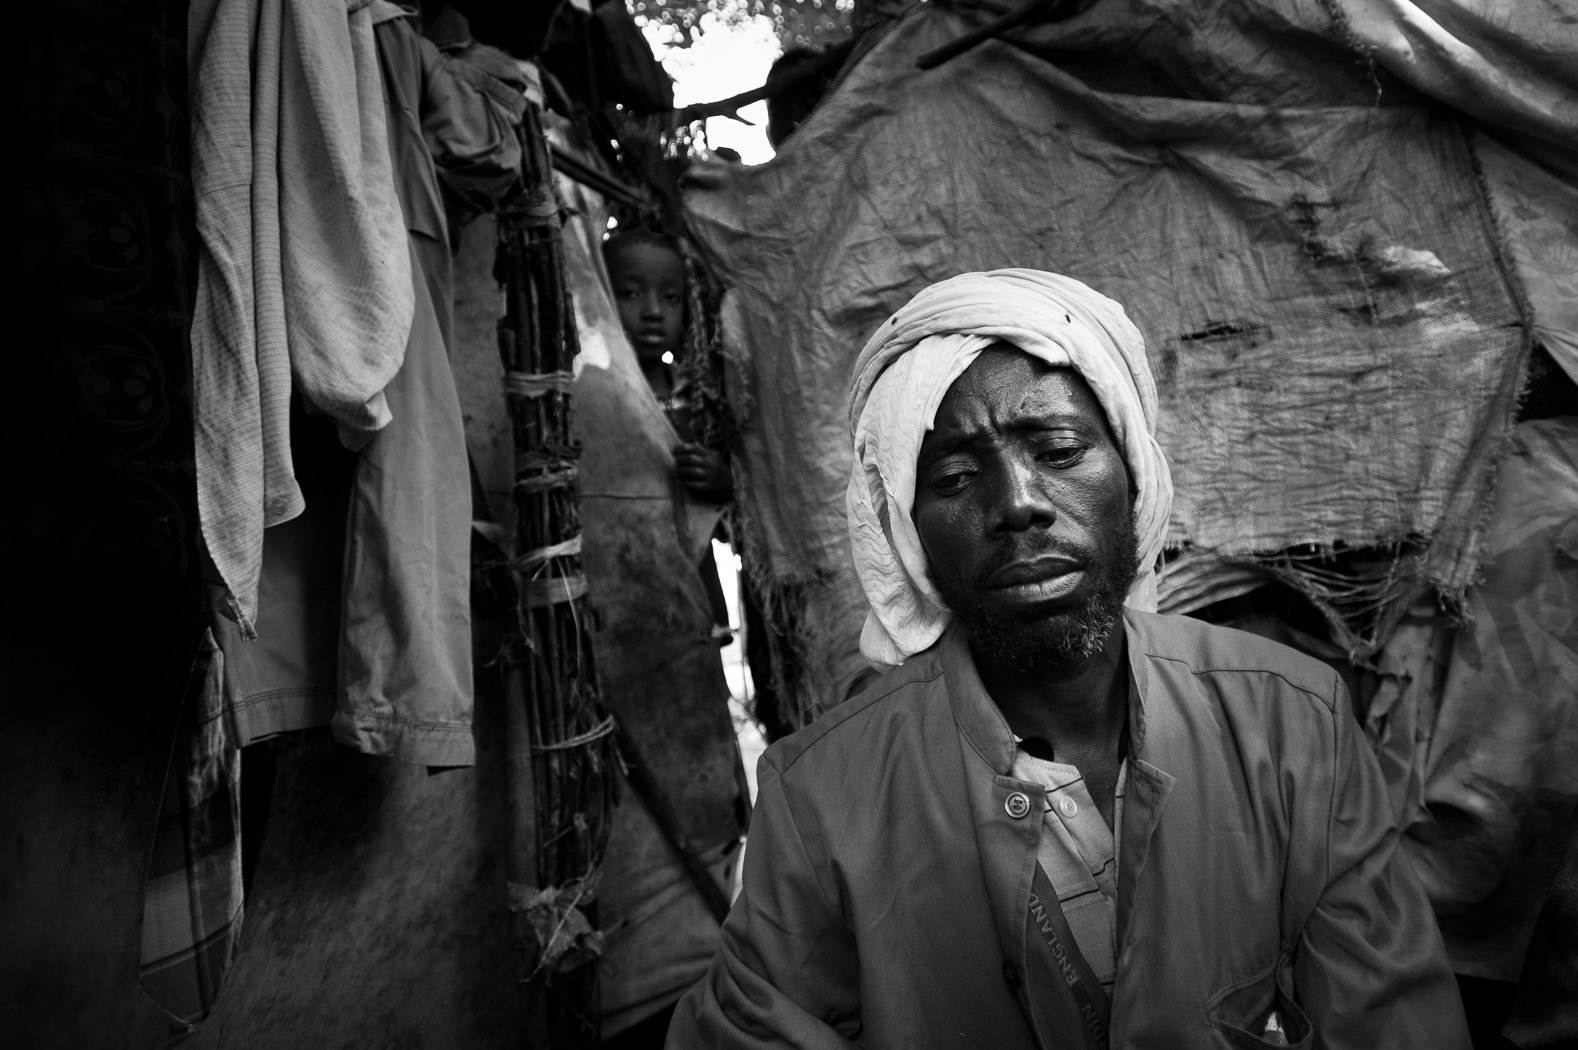 Sheikh Abdulahi Abdiyow Barkem from Buur in Somalia's Galguduud district, lost his entire herd of 37 cattle and 90 goats to the drought. Left without livelihood, he came to Mogadishu, despite the conflict, and is now living in an IDP camp in the city.